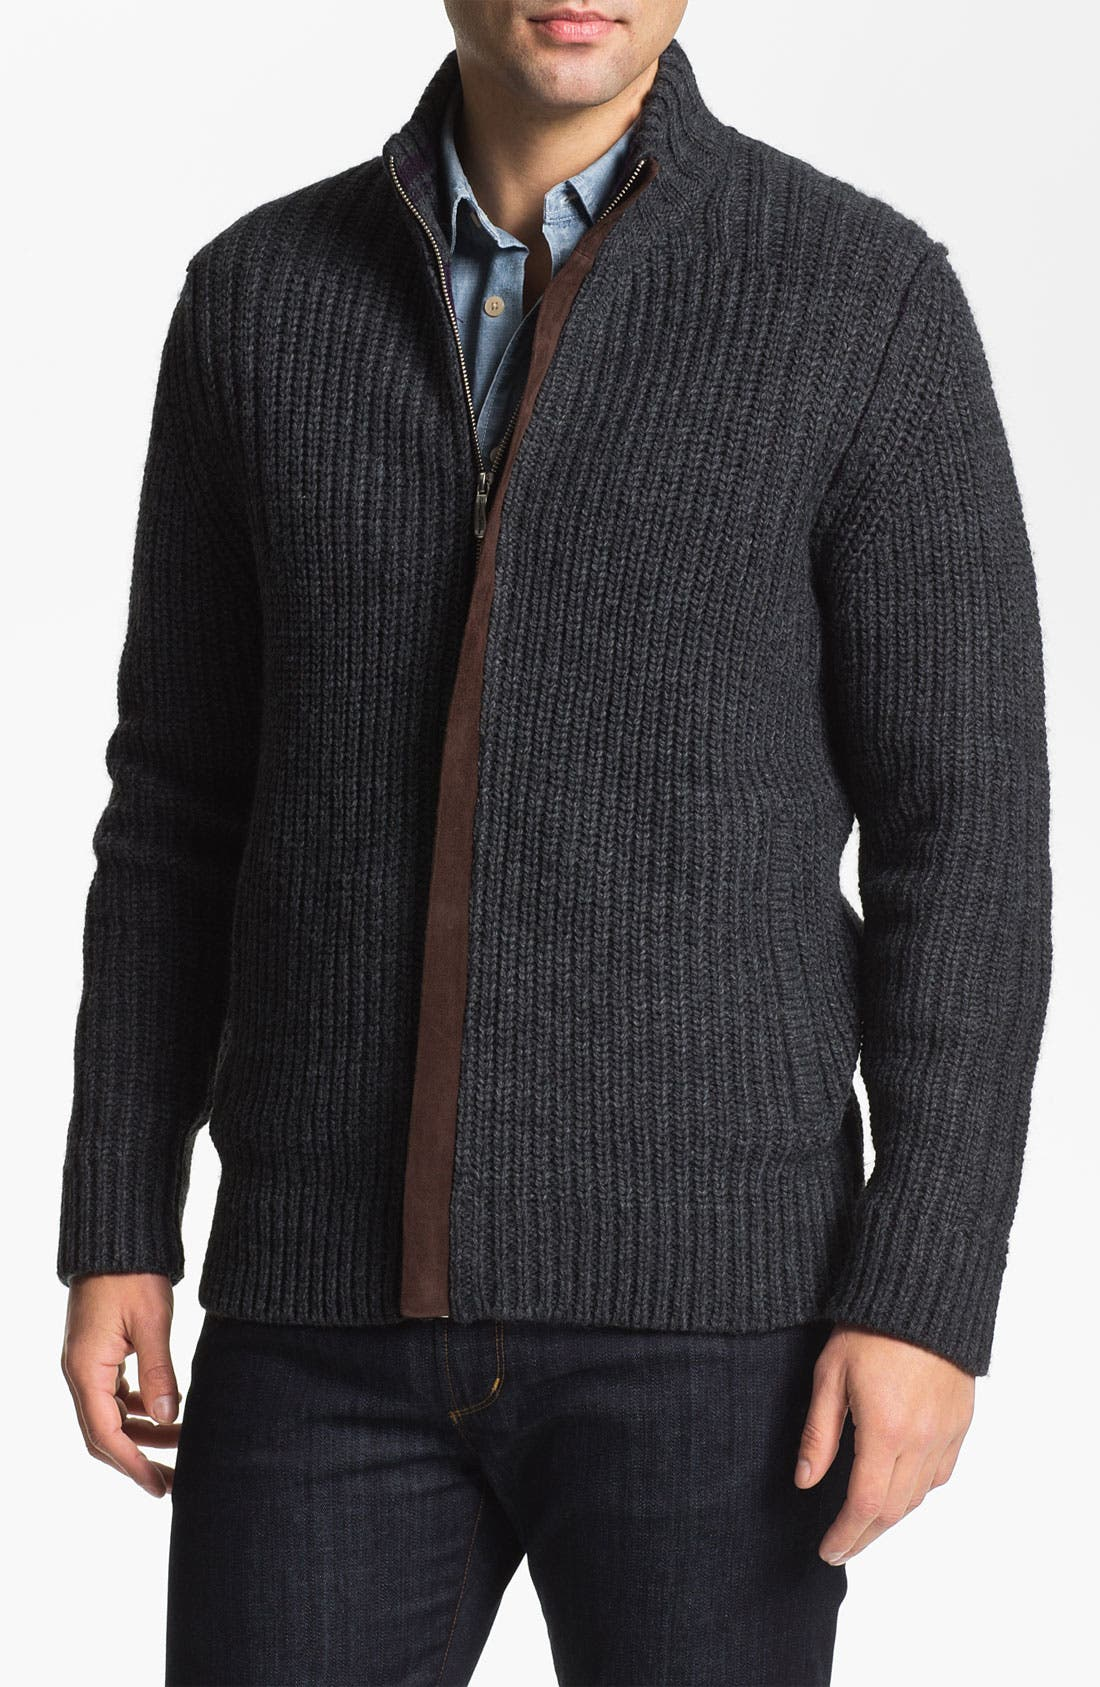 Alternate Image 1 Selected - Tommy Bahama 'The Persueder' Zip Cardigan